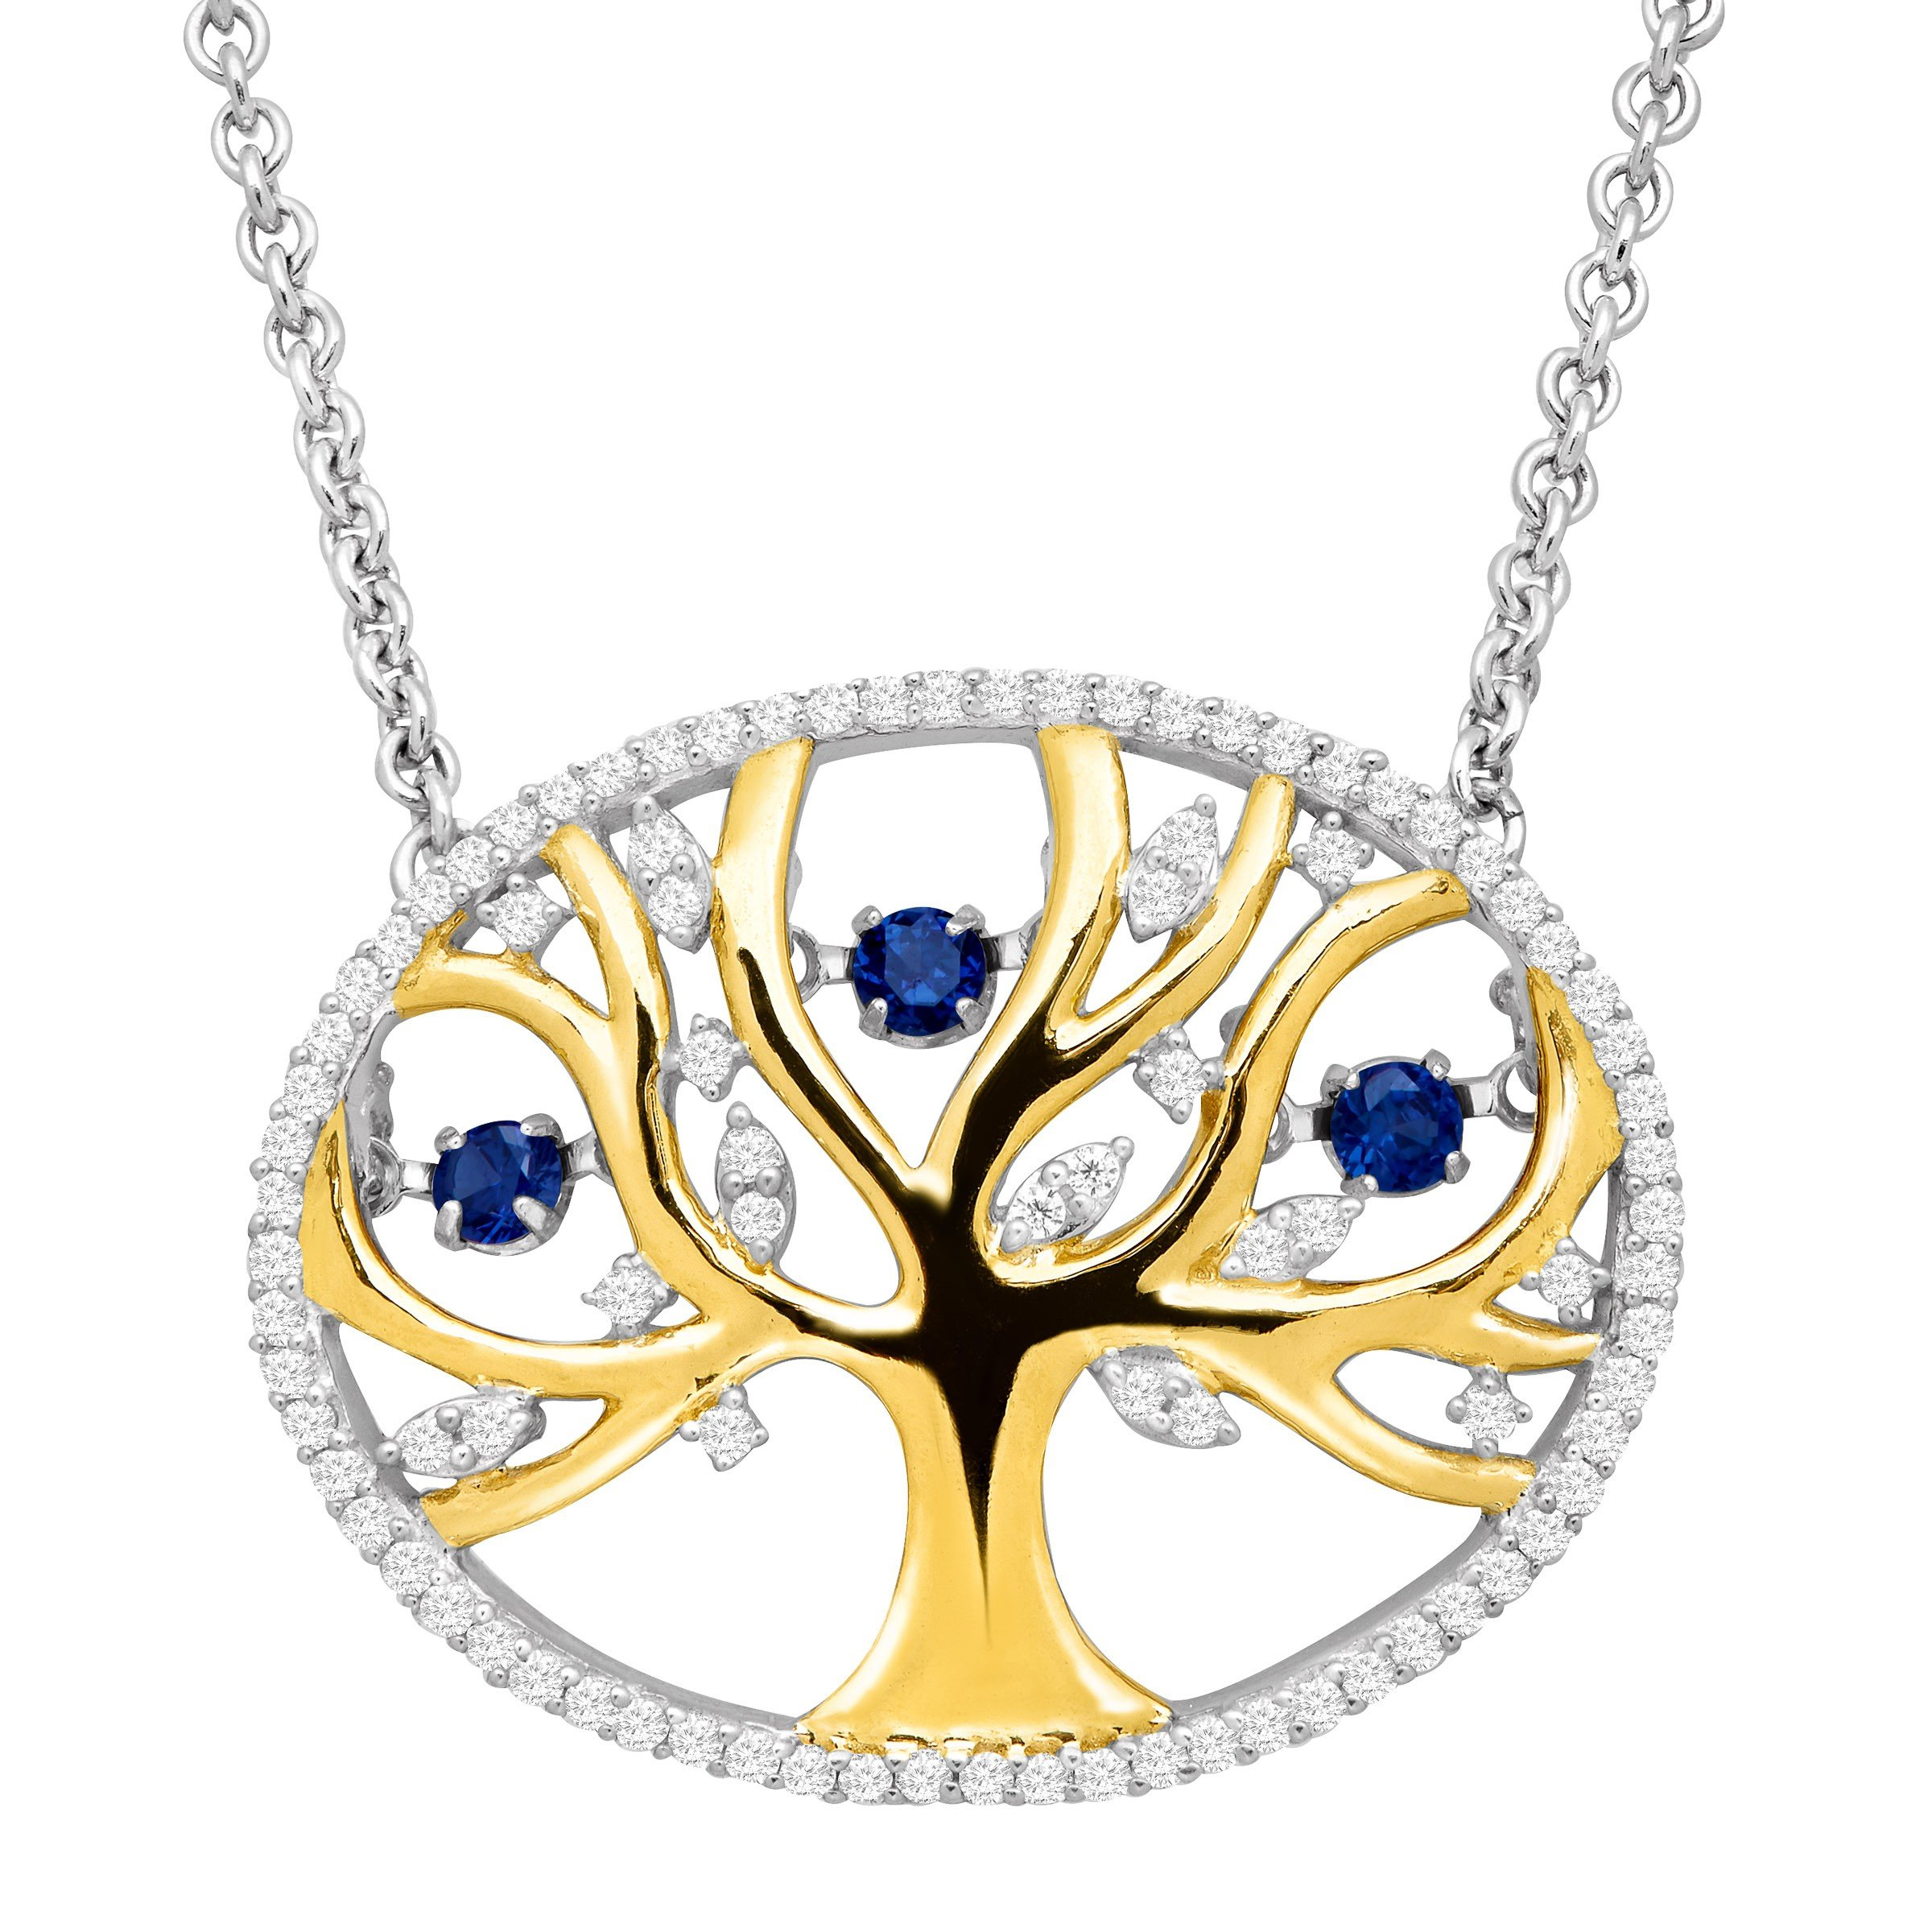 1/3 ct Created Sapphire Tree of Love Floater Necklace with Cubic Zirconia in 14K Gold-Plated Sterling Silver